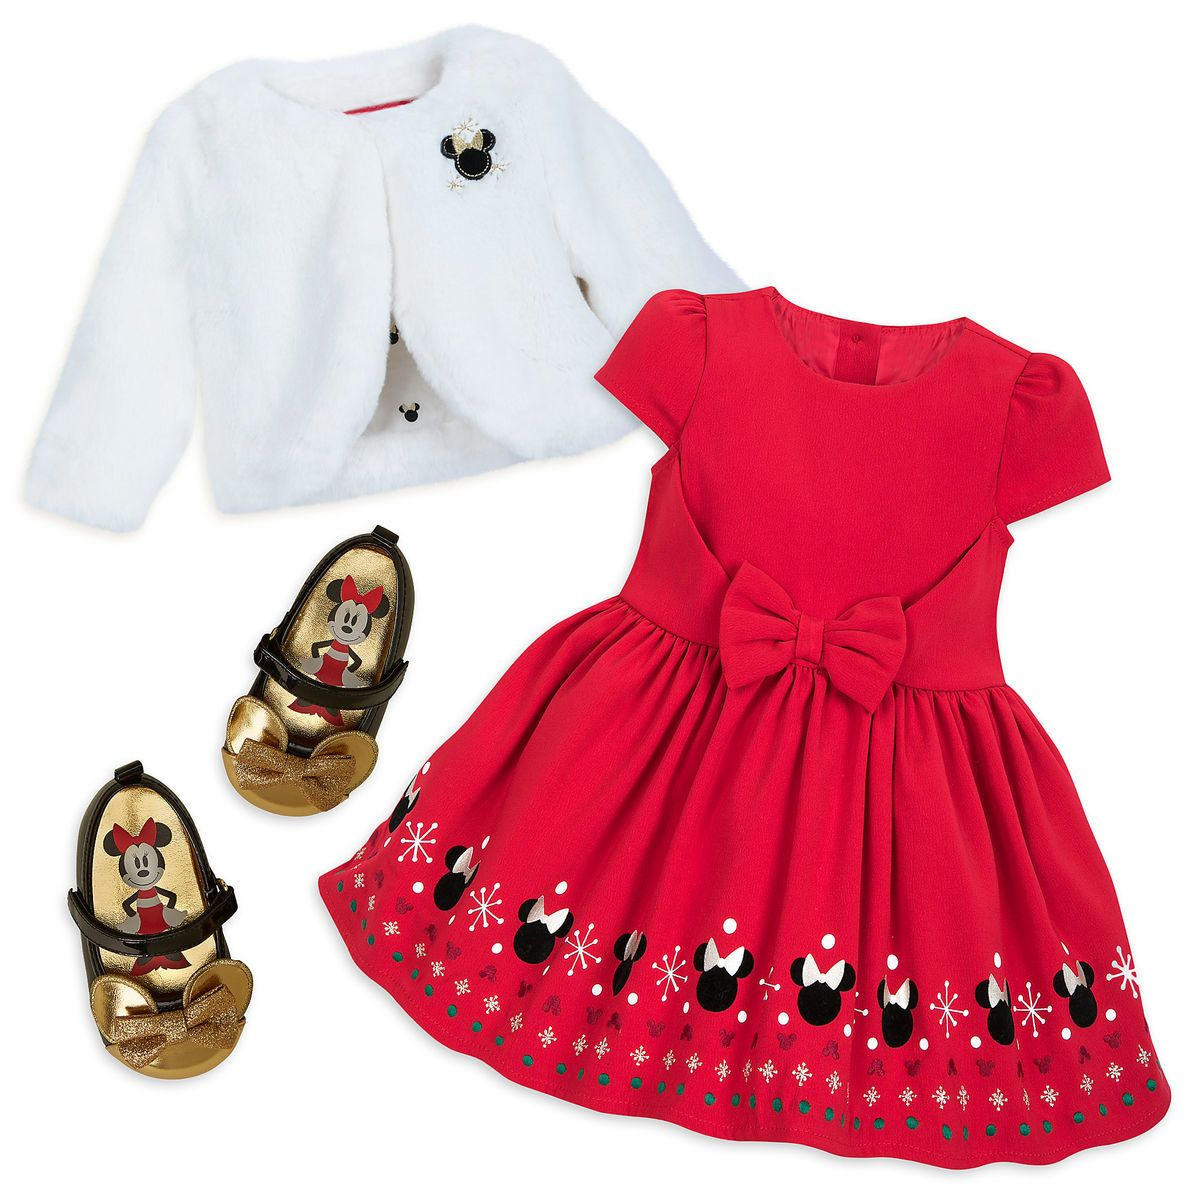 Minnie Mouse Christmas Dress.Minnie Mouse Holiday Collection For Baby Disney Store